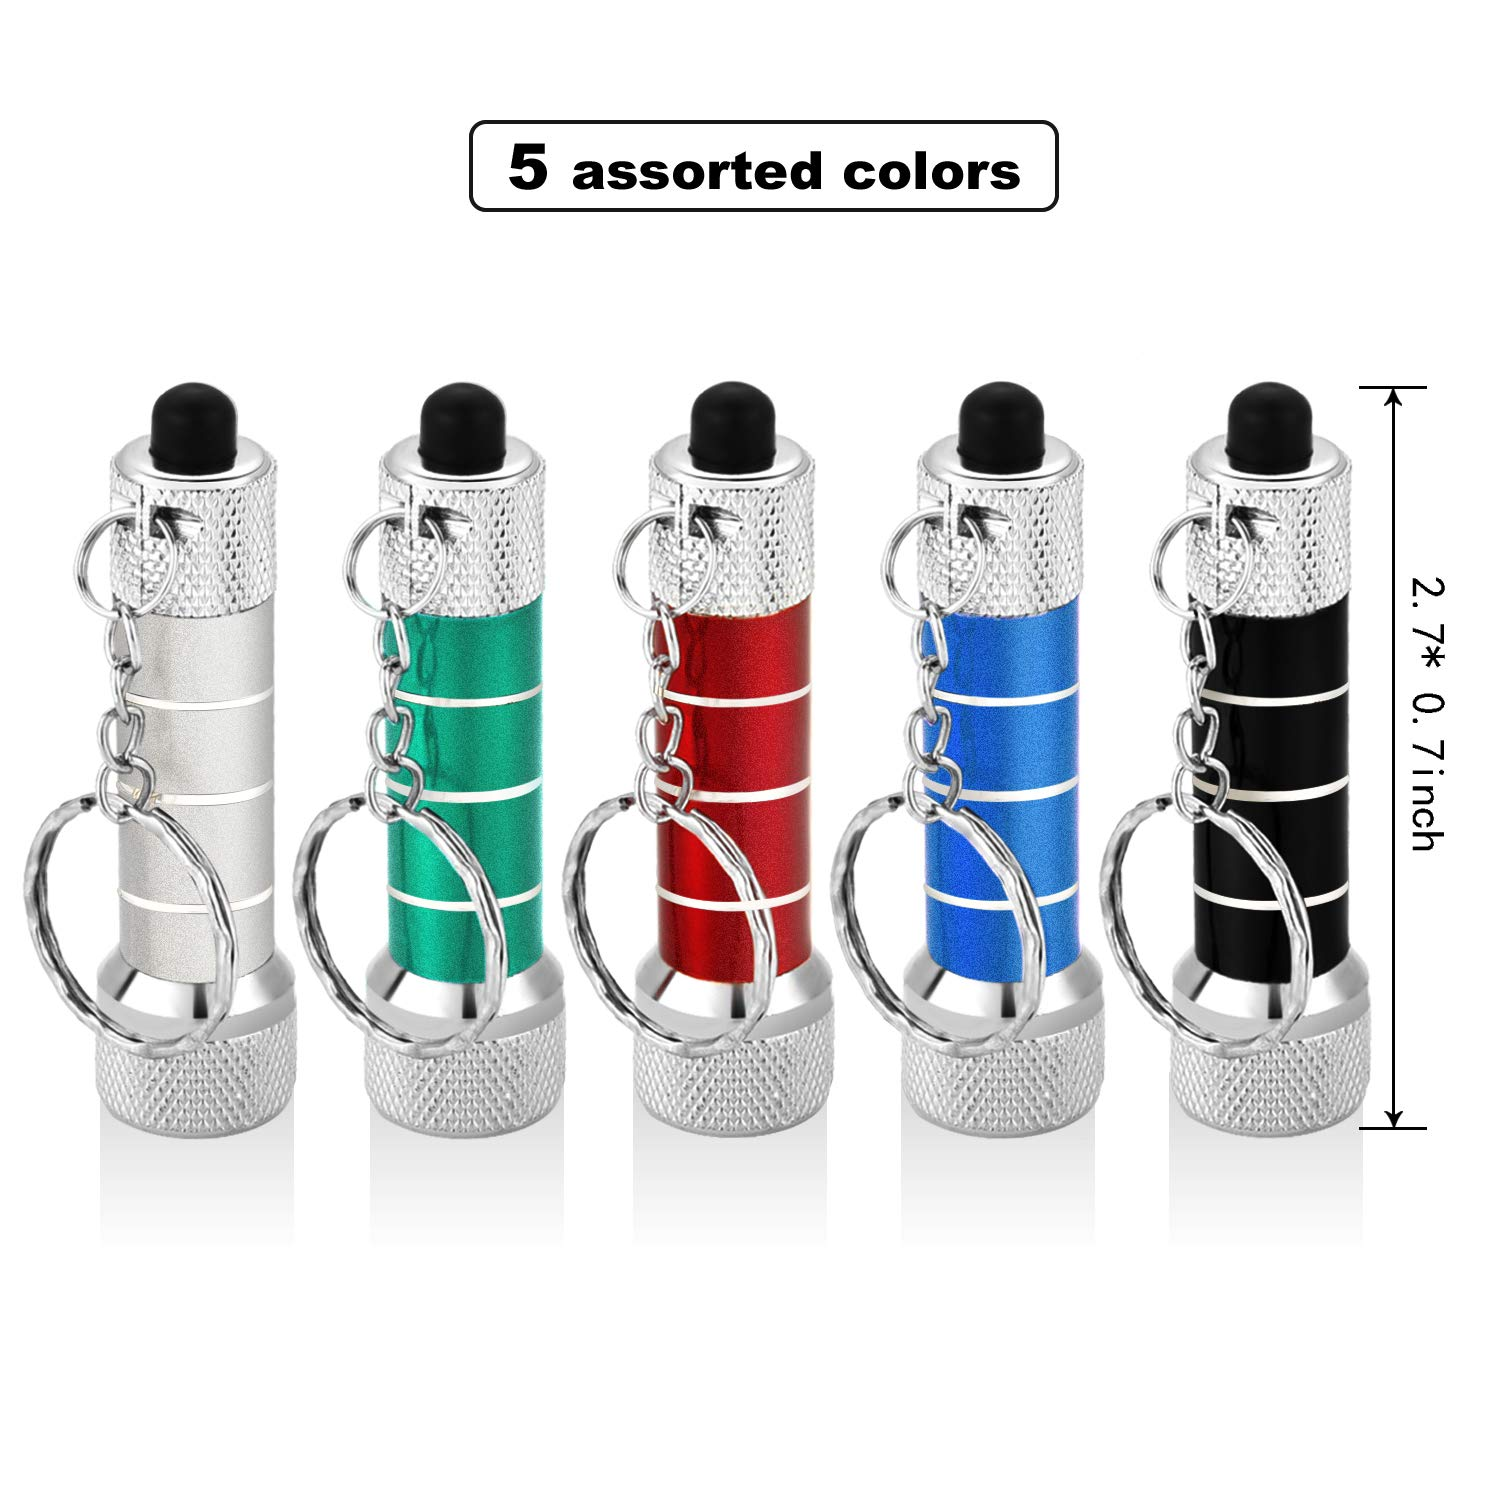 Style 3 20 Pieces Mini Flashlights Keychain 5 Bulbs LED Keychain for Camping Kids Party Favors